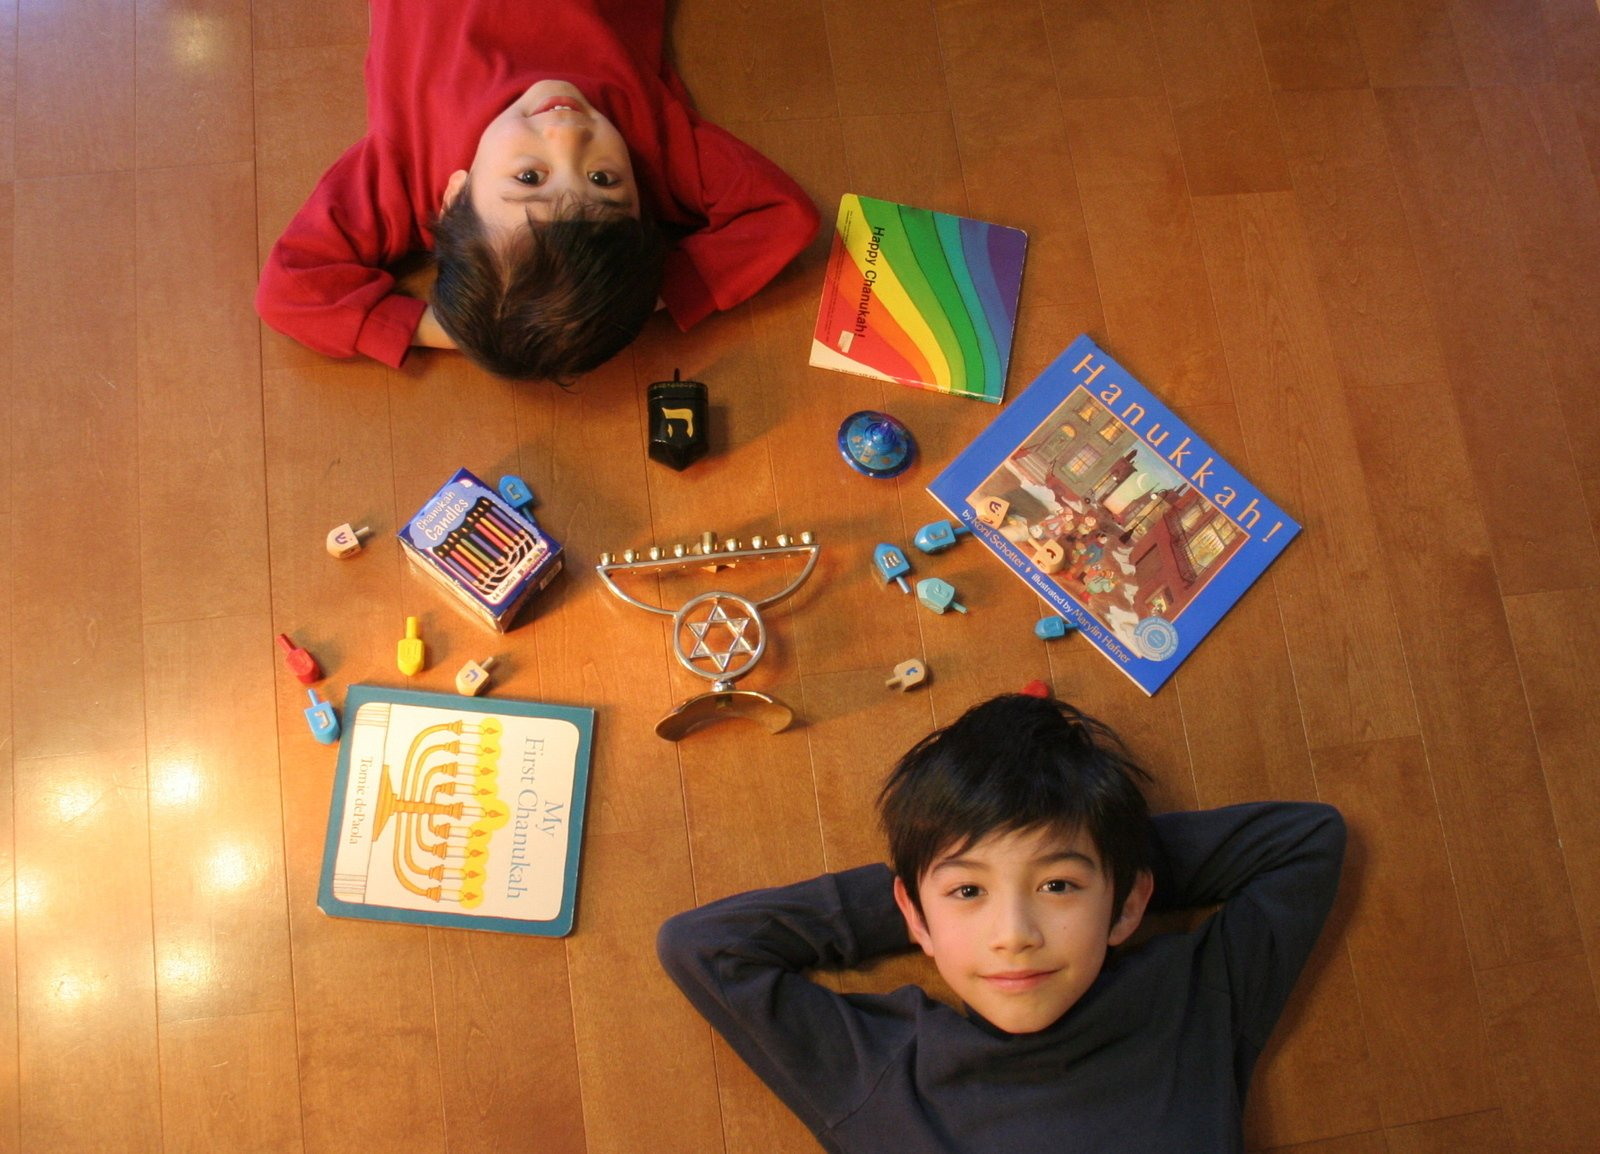 a girl and boy lay on the floor in opposite directions and smile up at a camera above with a menorah, gelt, dreidels, candles, and chanukah books between them.